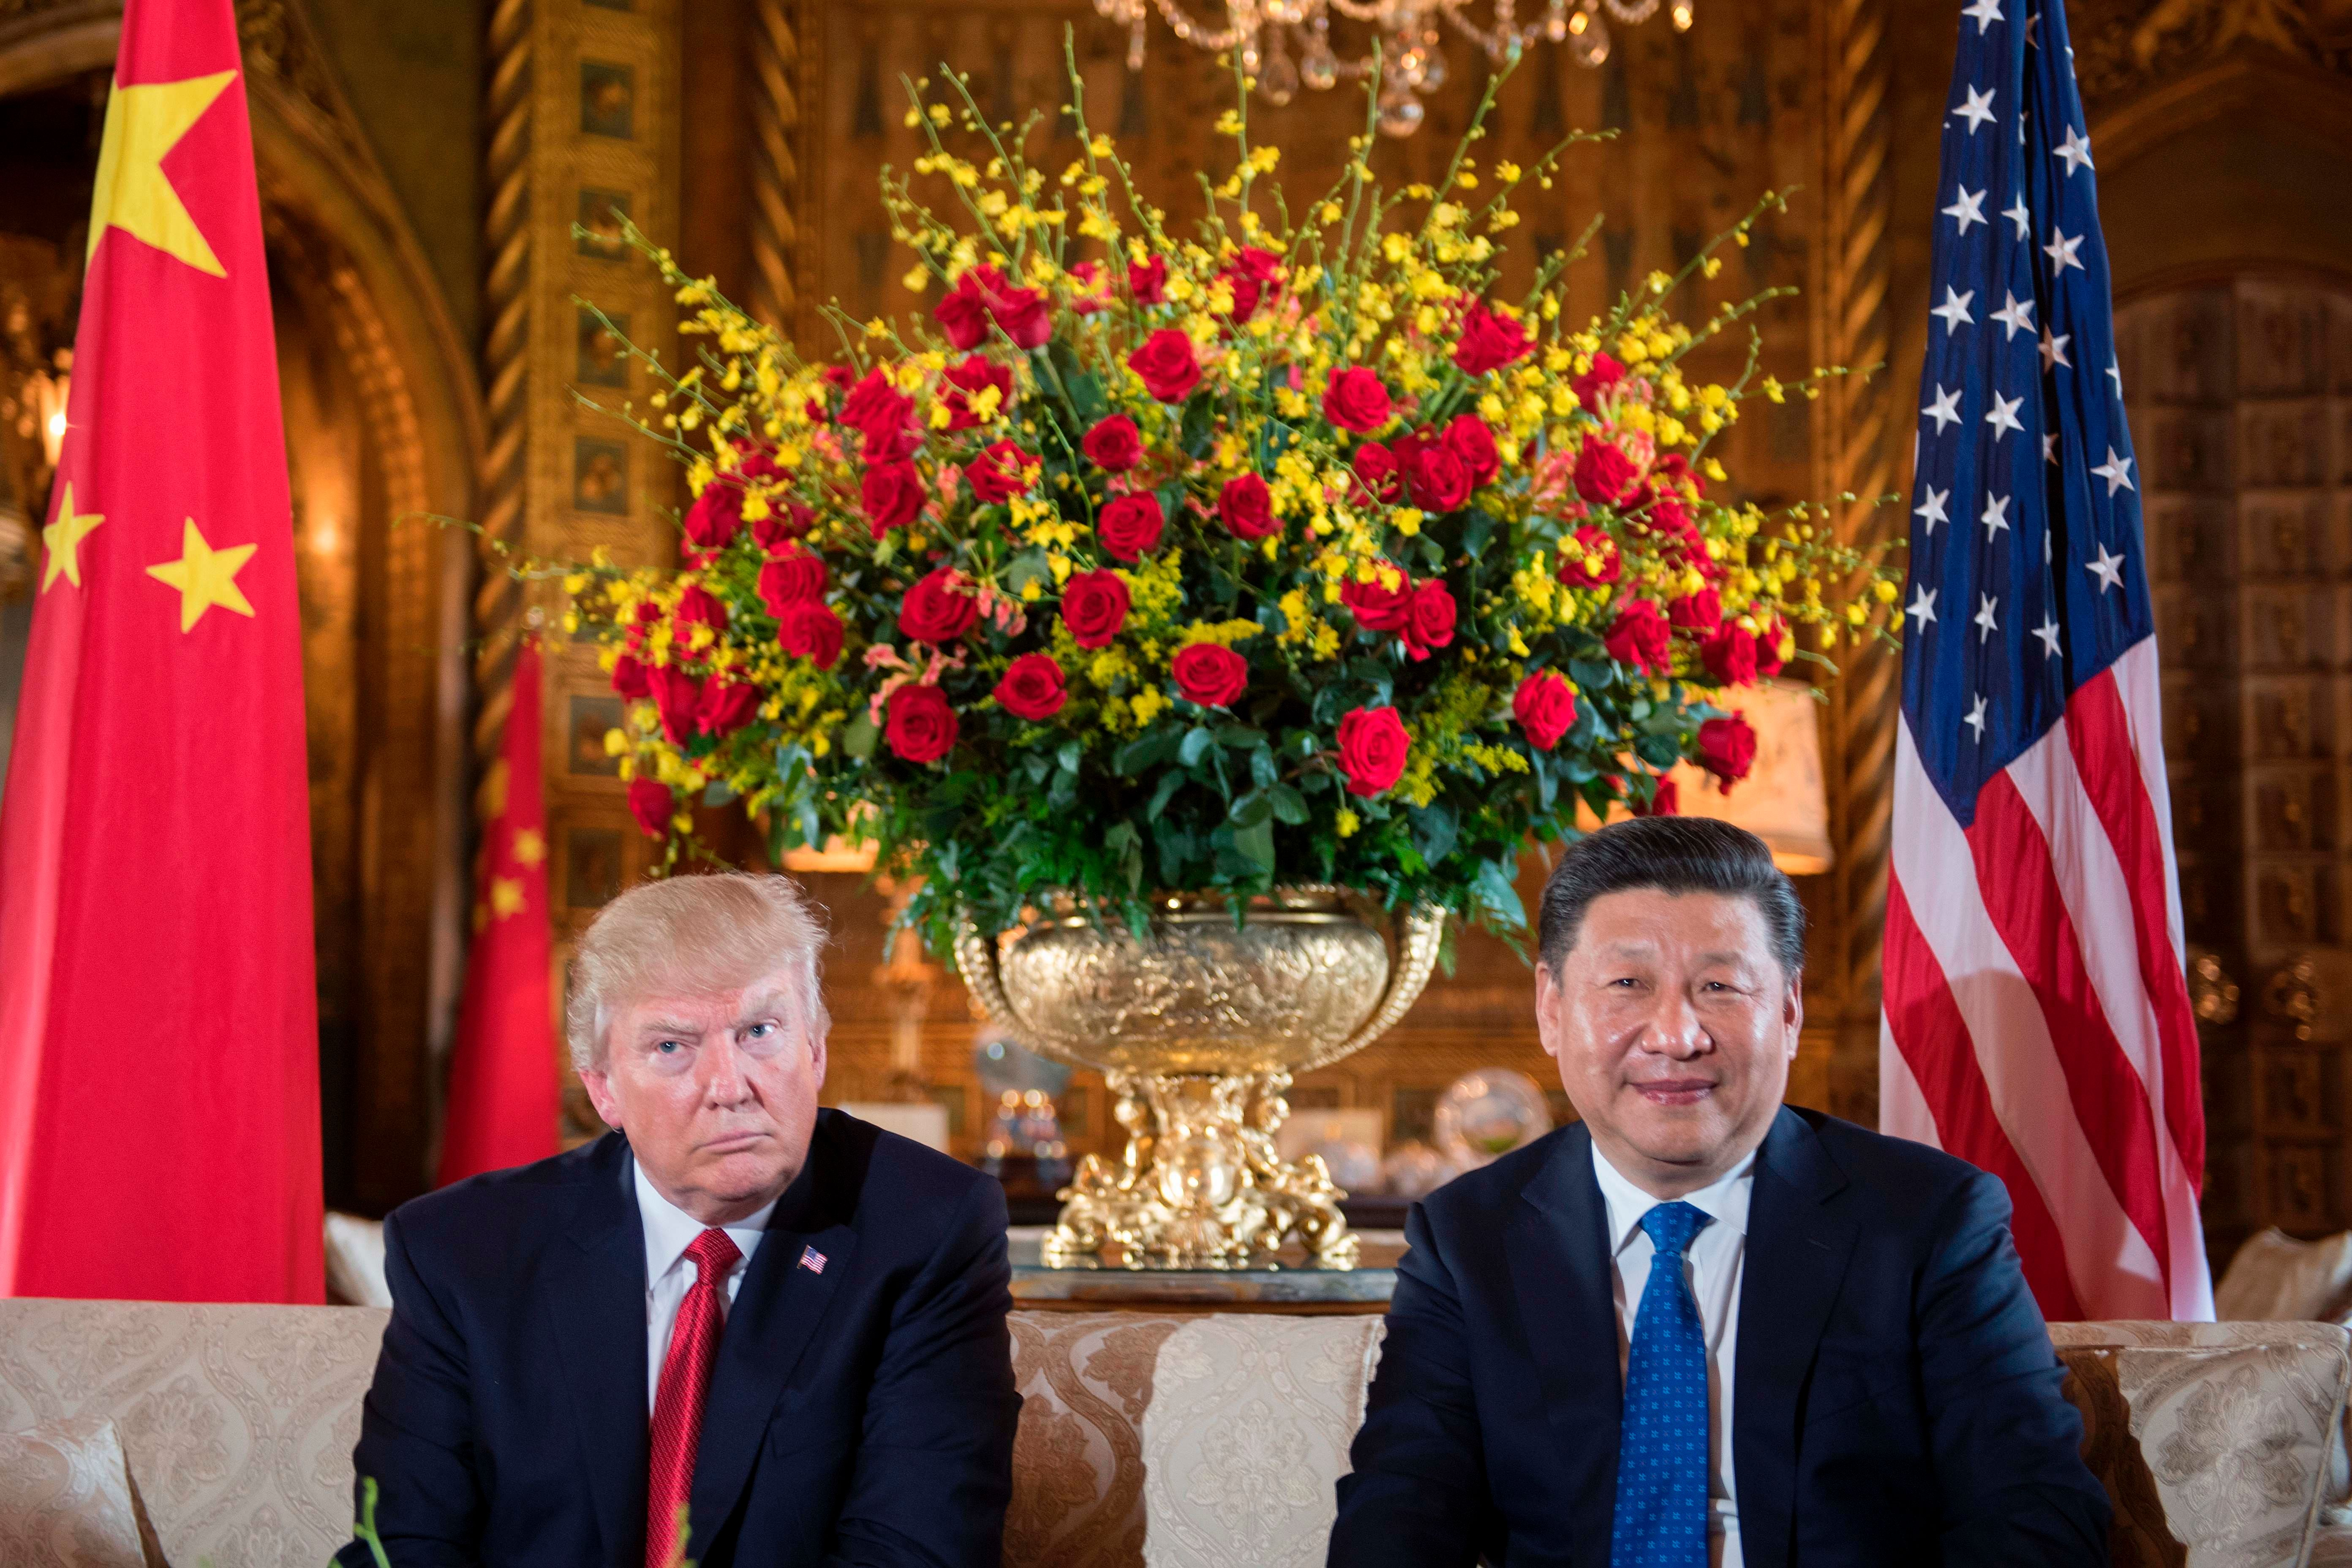 US President Donald Trump (L) sits with Chinese President Xi Jinping (R) during a bilateral meeting at the Mar-a-Lago estate in West Palm Beach, Florida, on April 6, 2017. / AFP PHOTO / JIM WATSON        (Photo credit should read JIM WATSON/AFP/Getty Images)